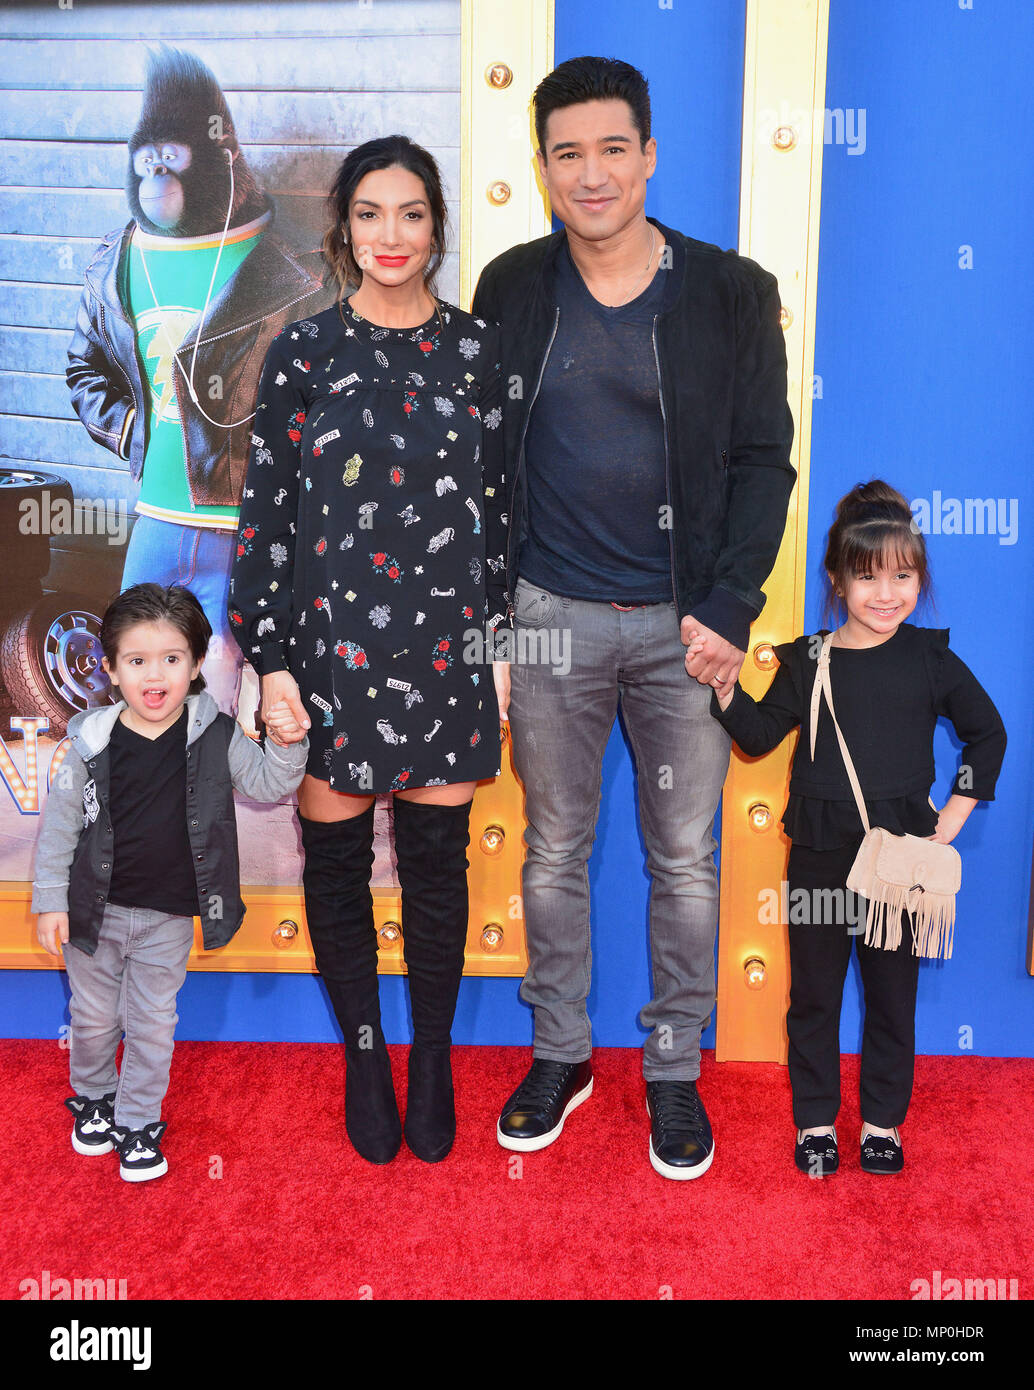 Mario Lopez And Family High Resolution Stock Photography And